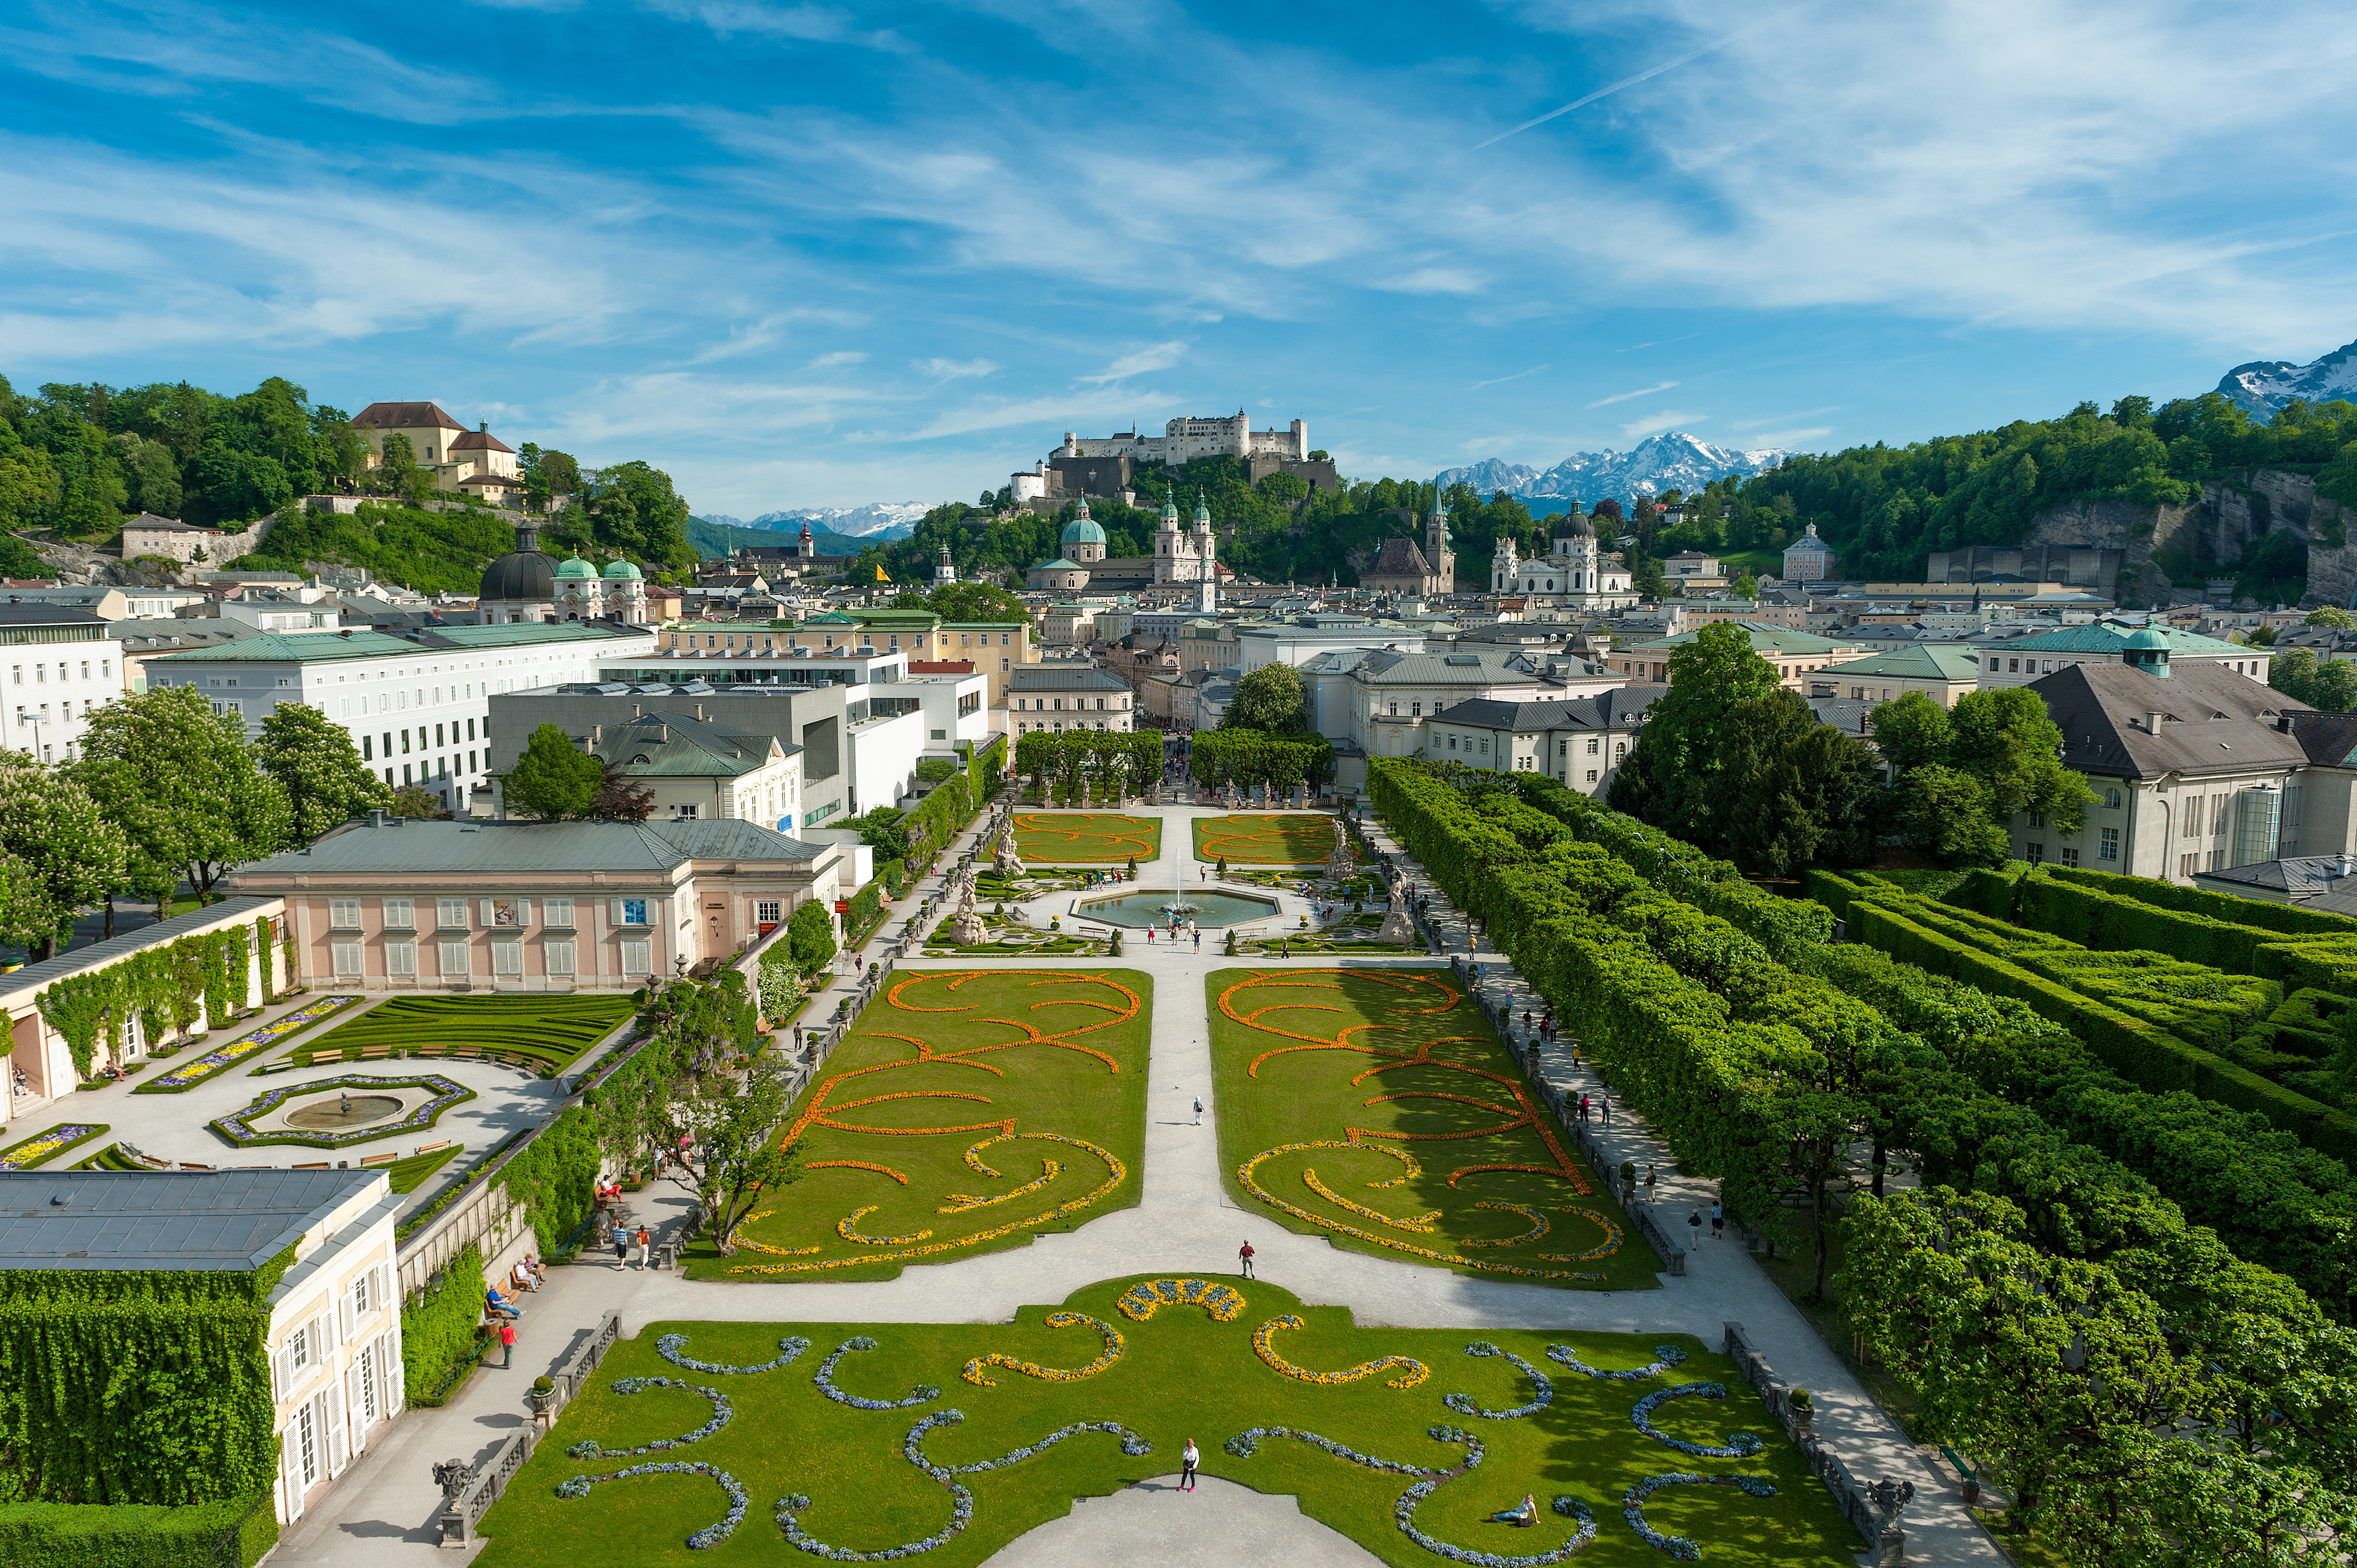 Sound of Music filming locations in SalzburgerLand